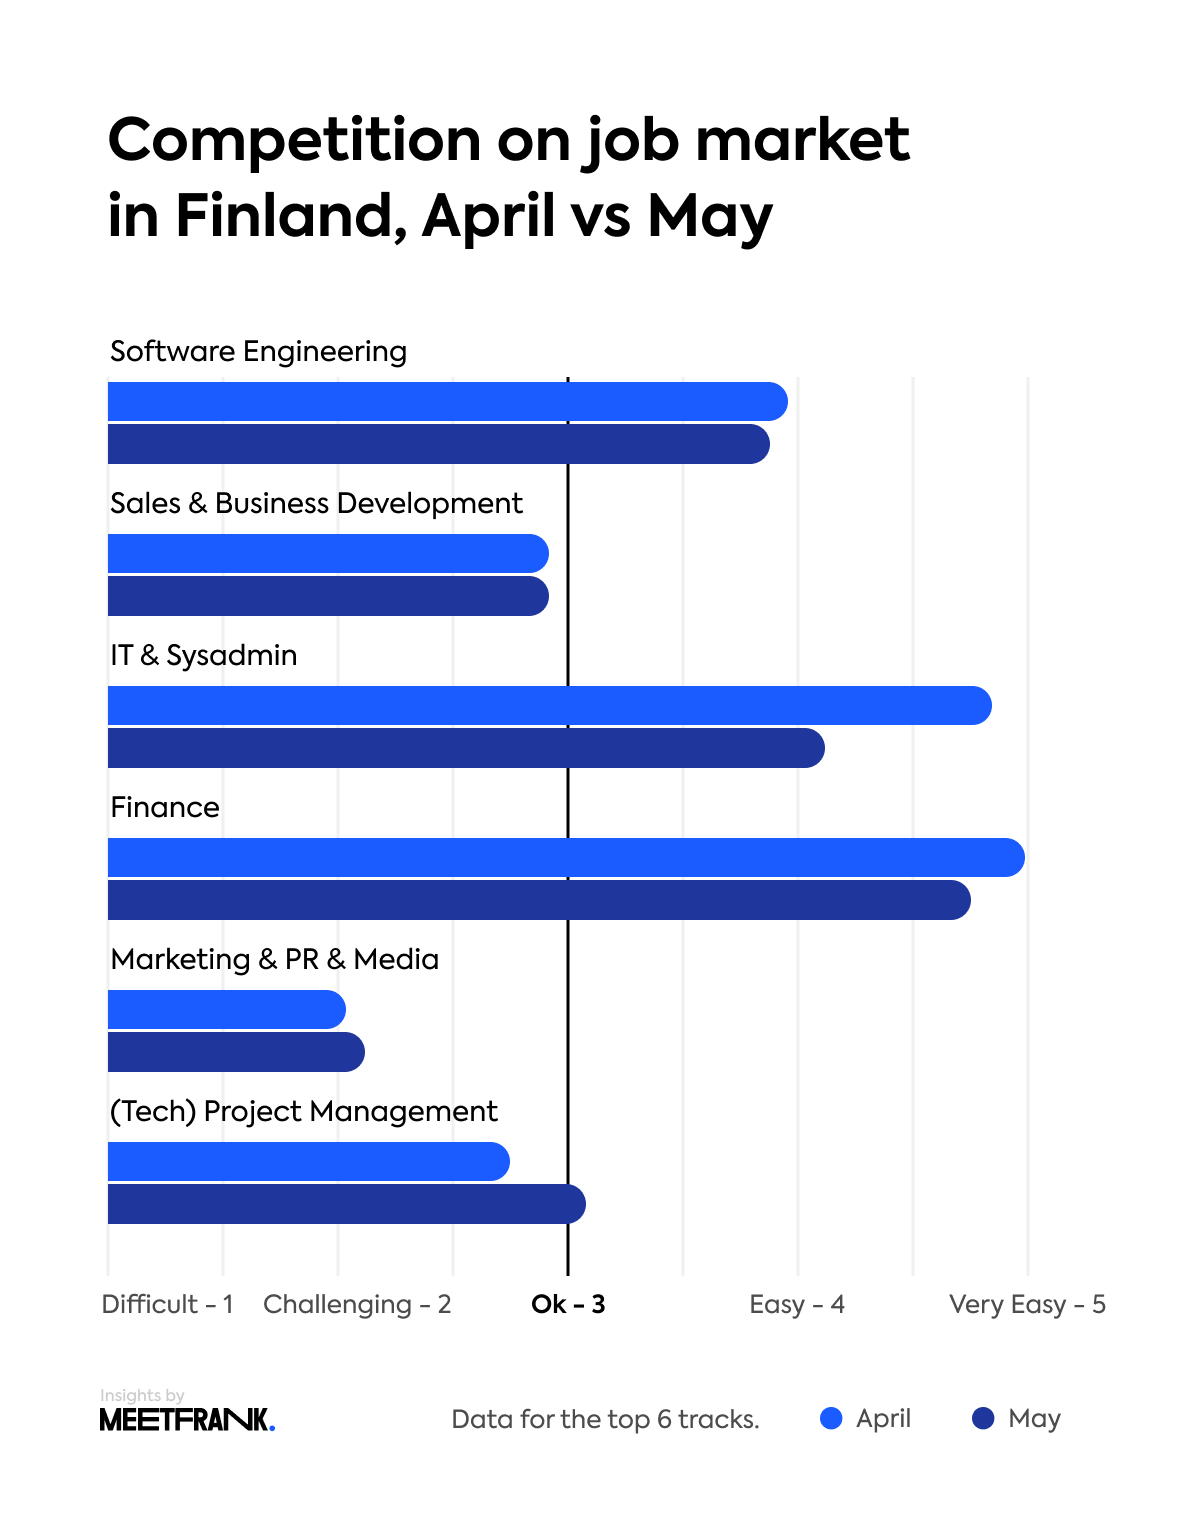 Finnish job market competitiveness